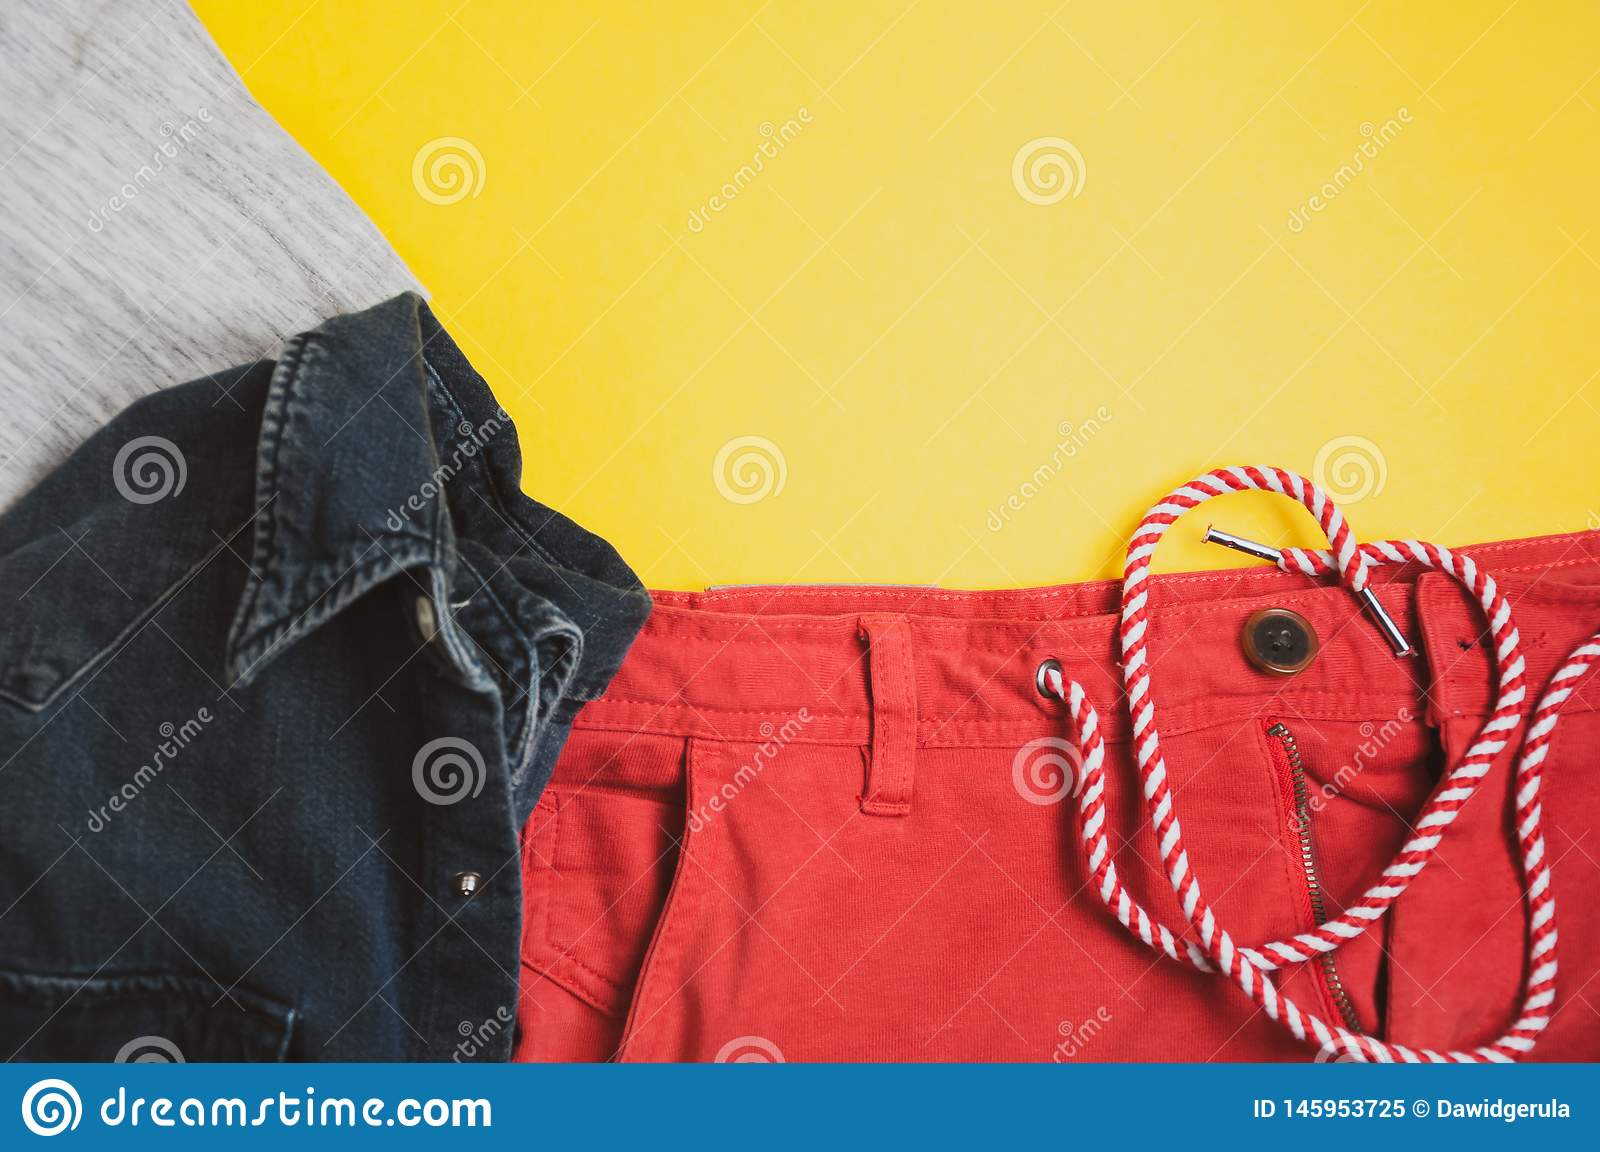 Top view of grey tshirt, denim jacket and red shorts on yellow background